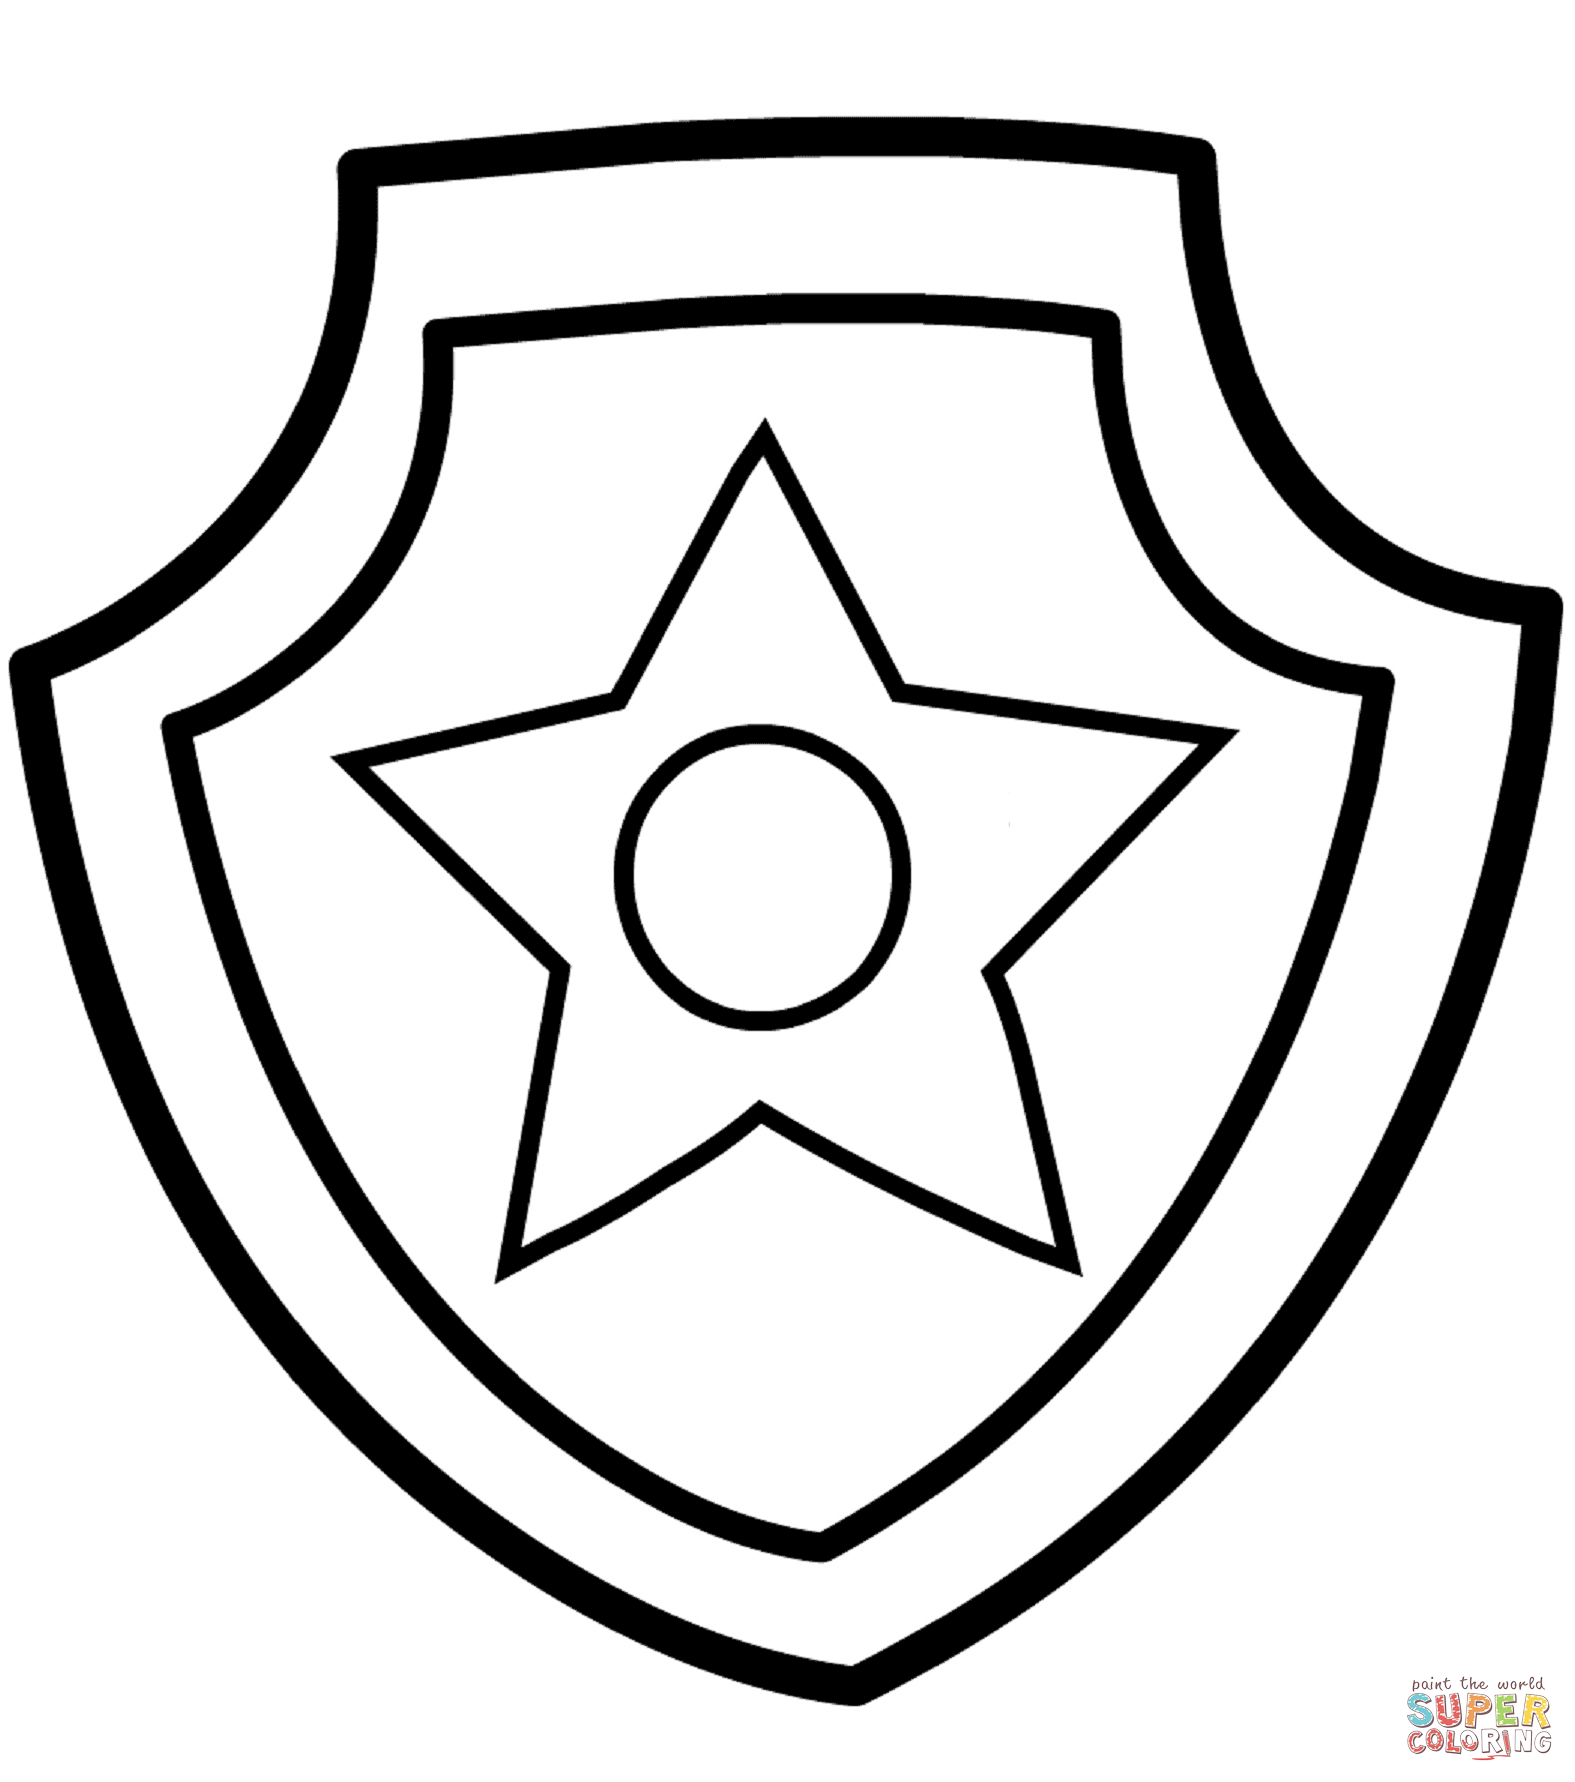 Paw patrol chase coloring. Badge clipart black and white